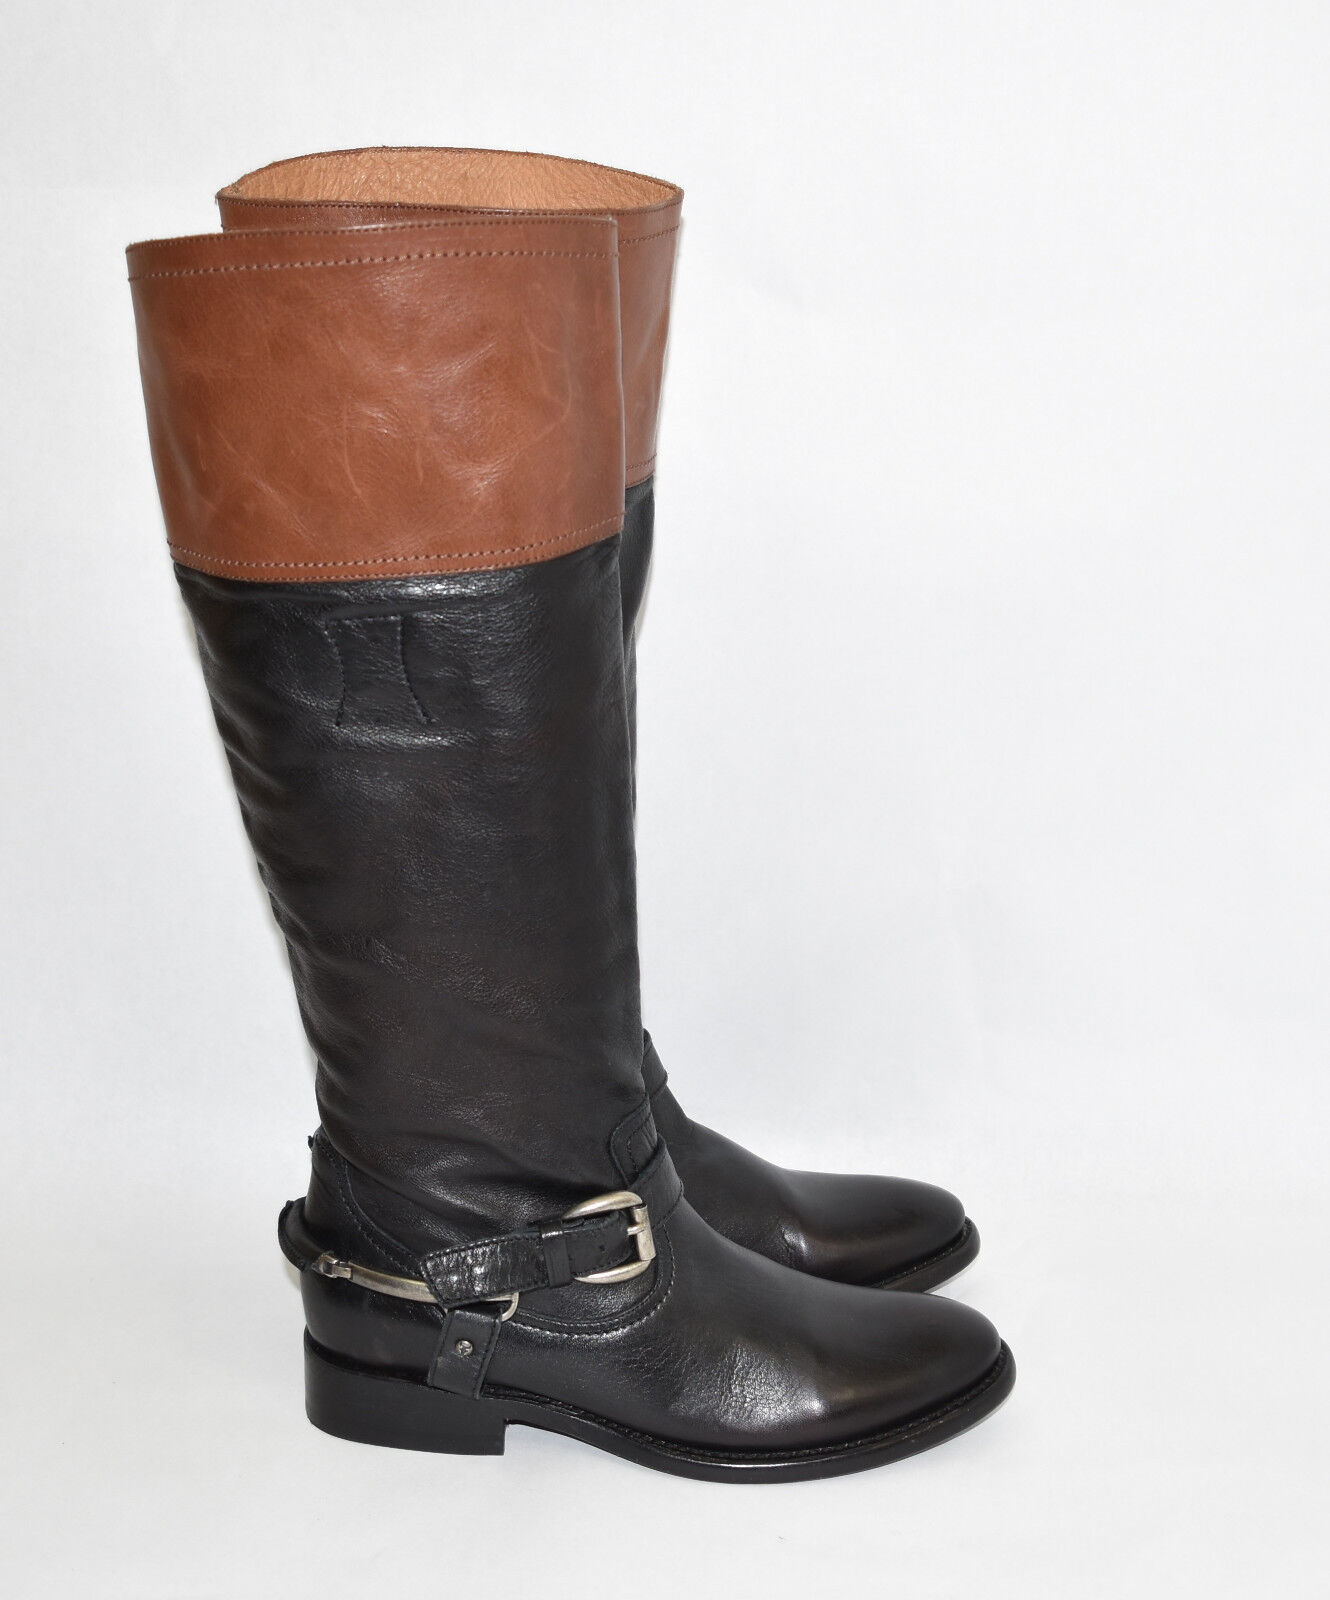 New! Trask 'Addison' Black Cognac Leather Riding Boot Size 7 M